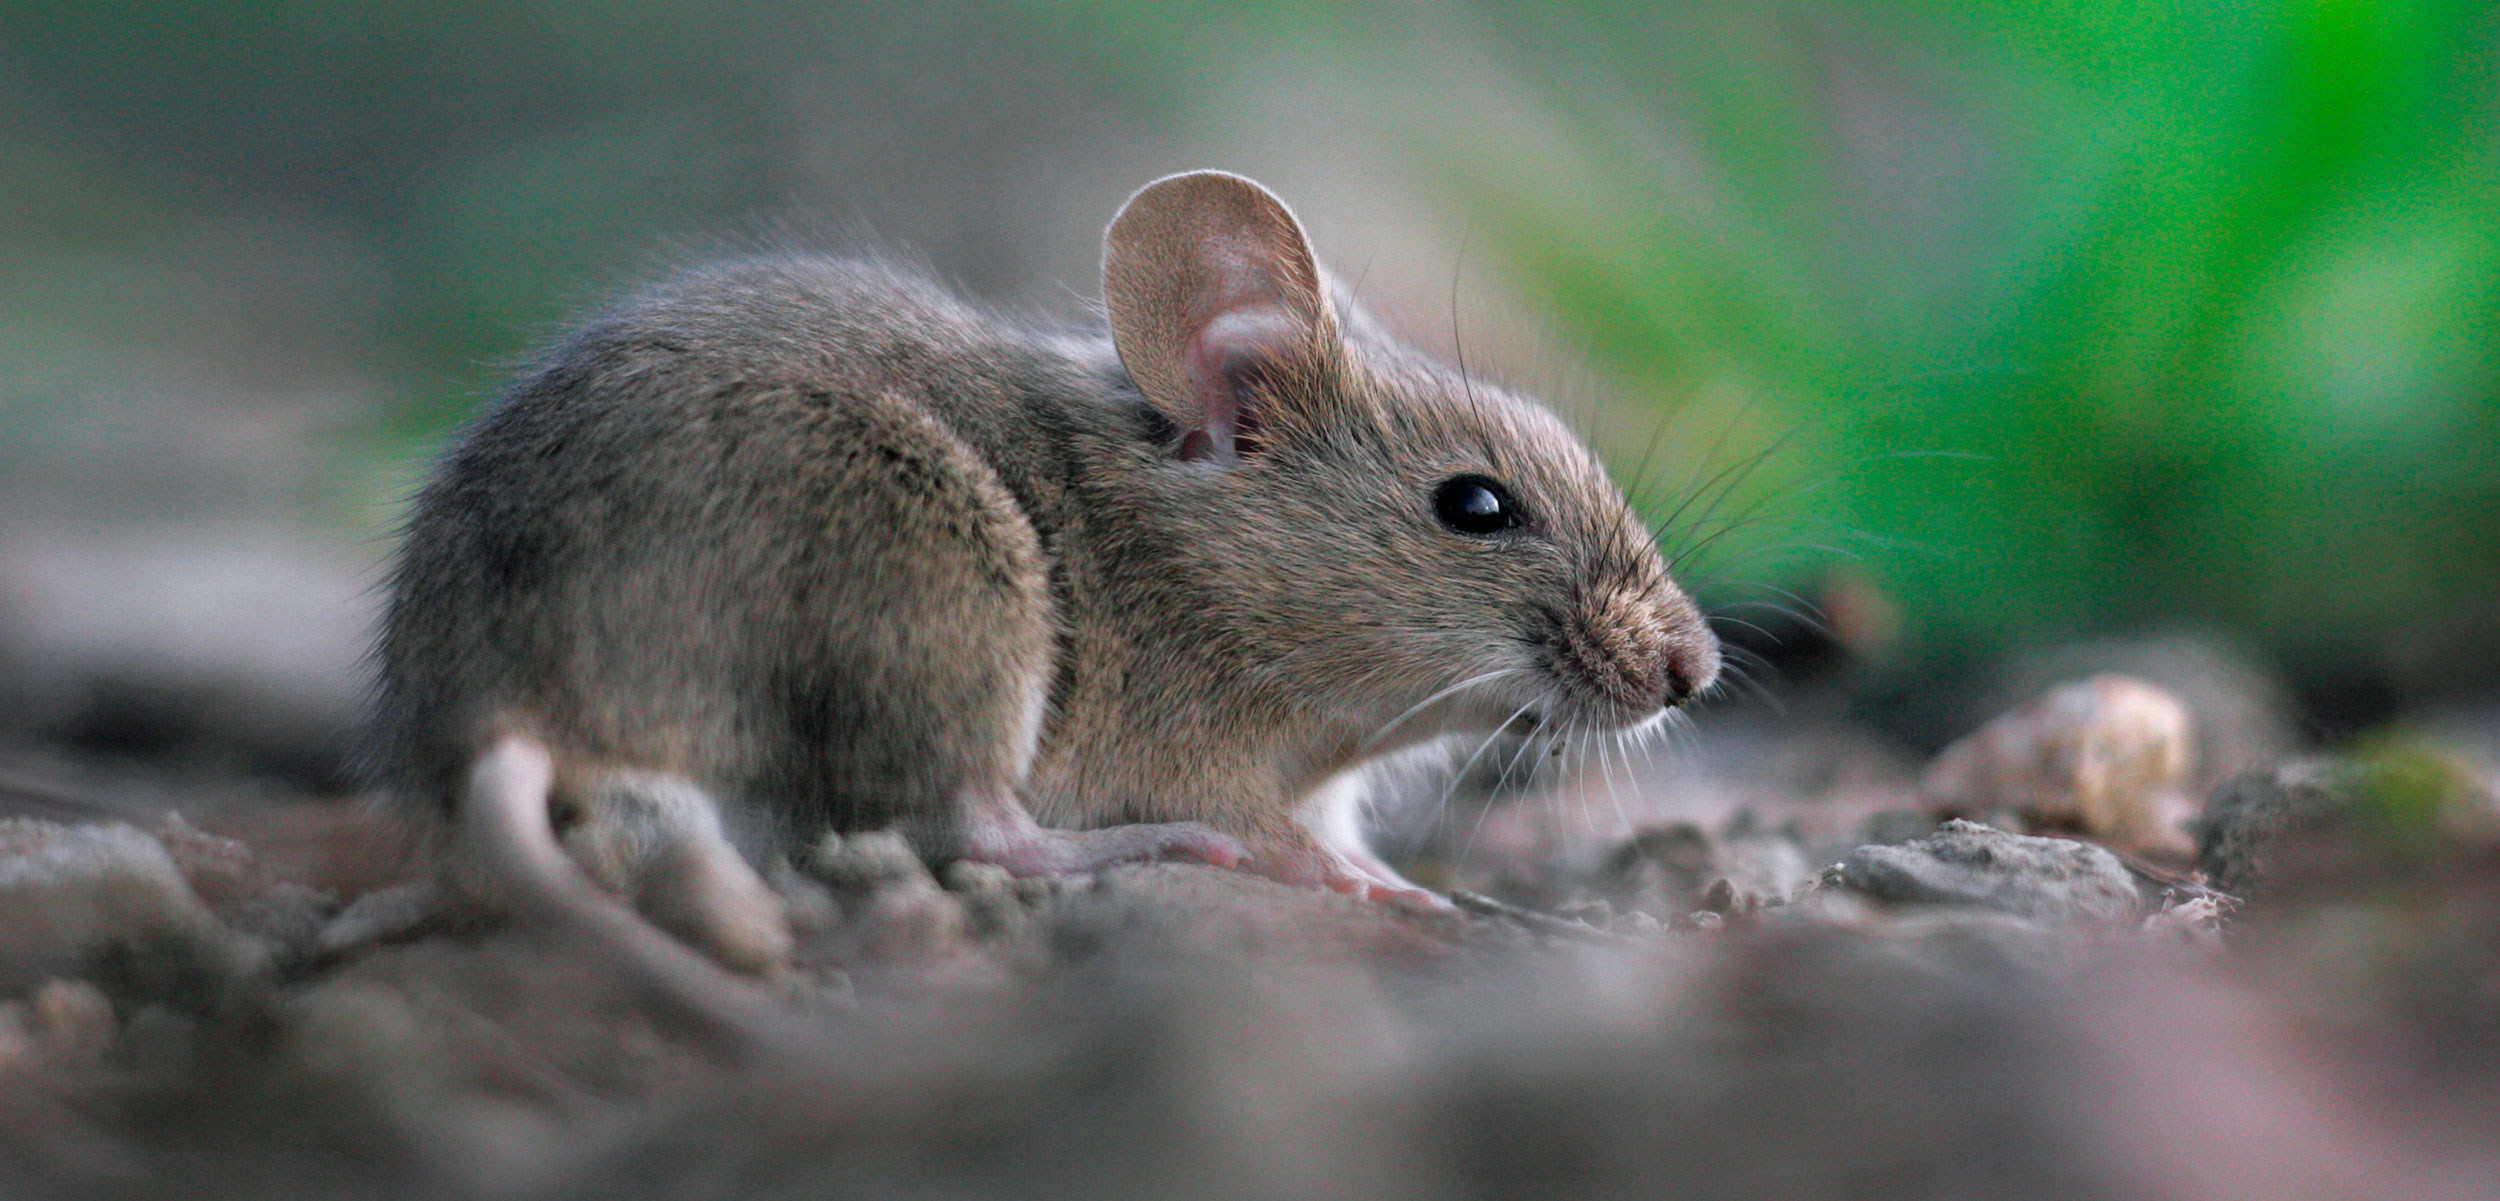 Types of Rodent Pests